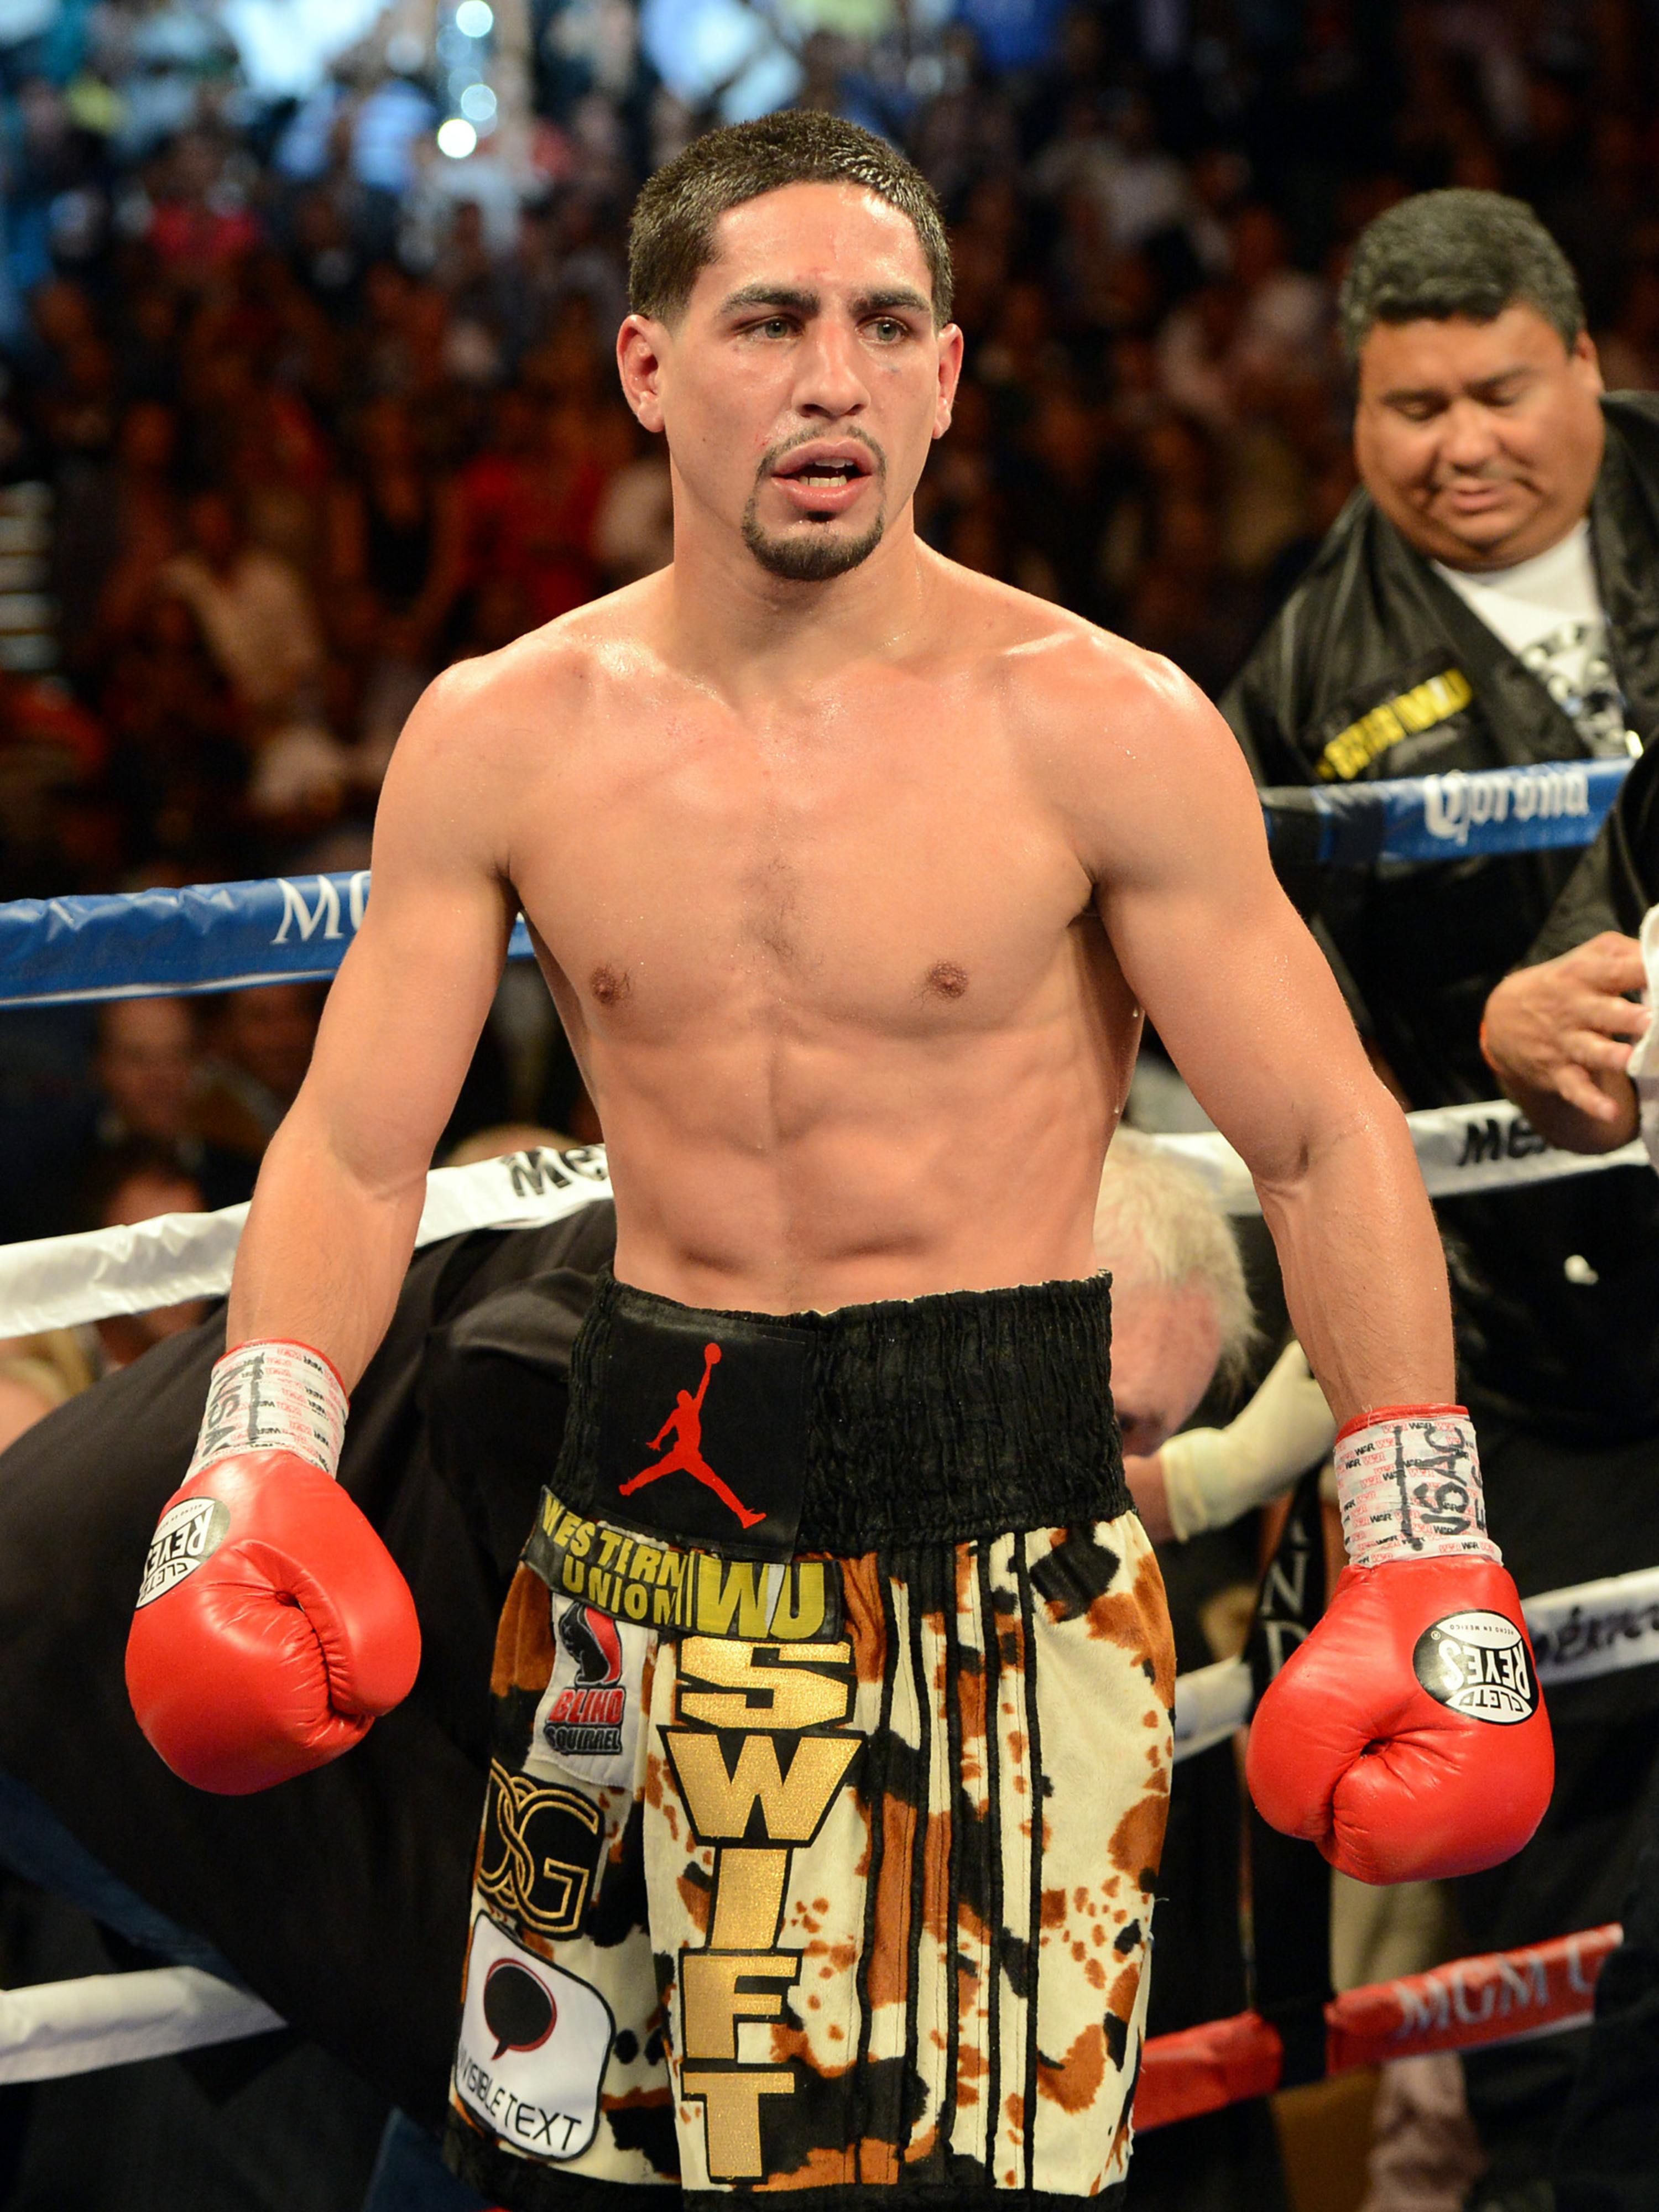 This is actually Danny Garcia.